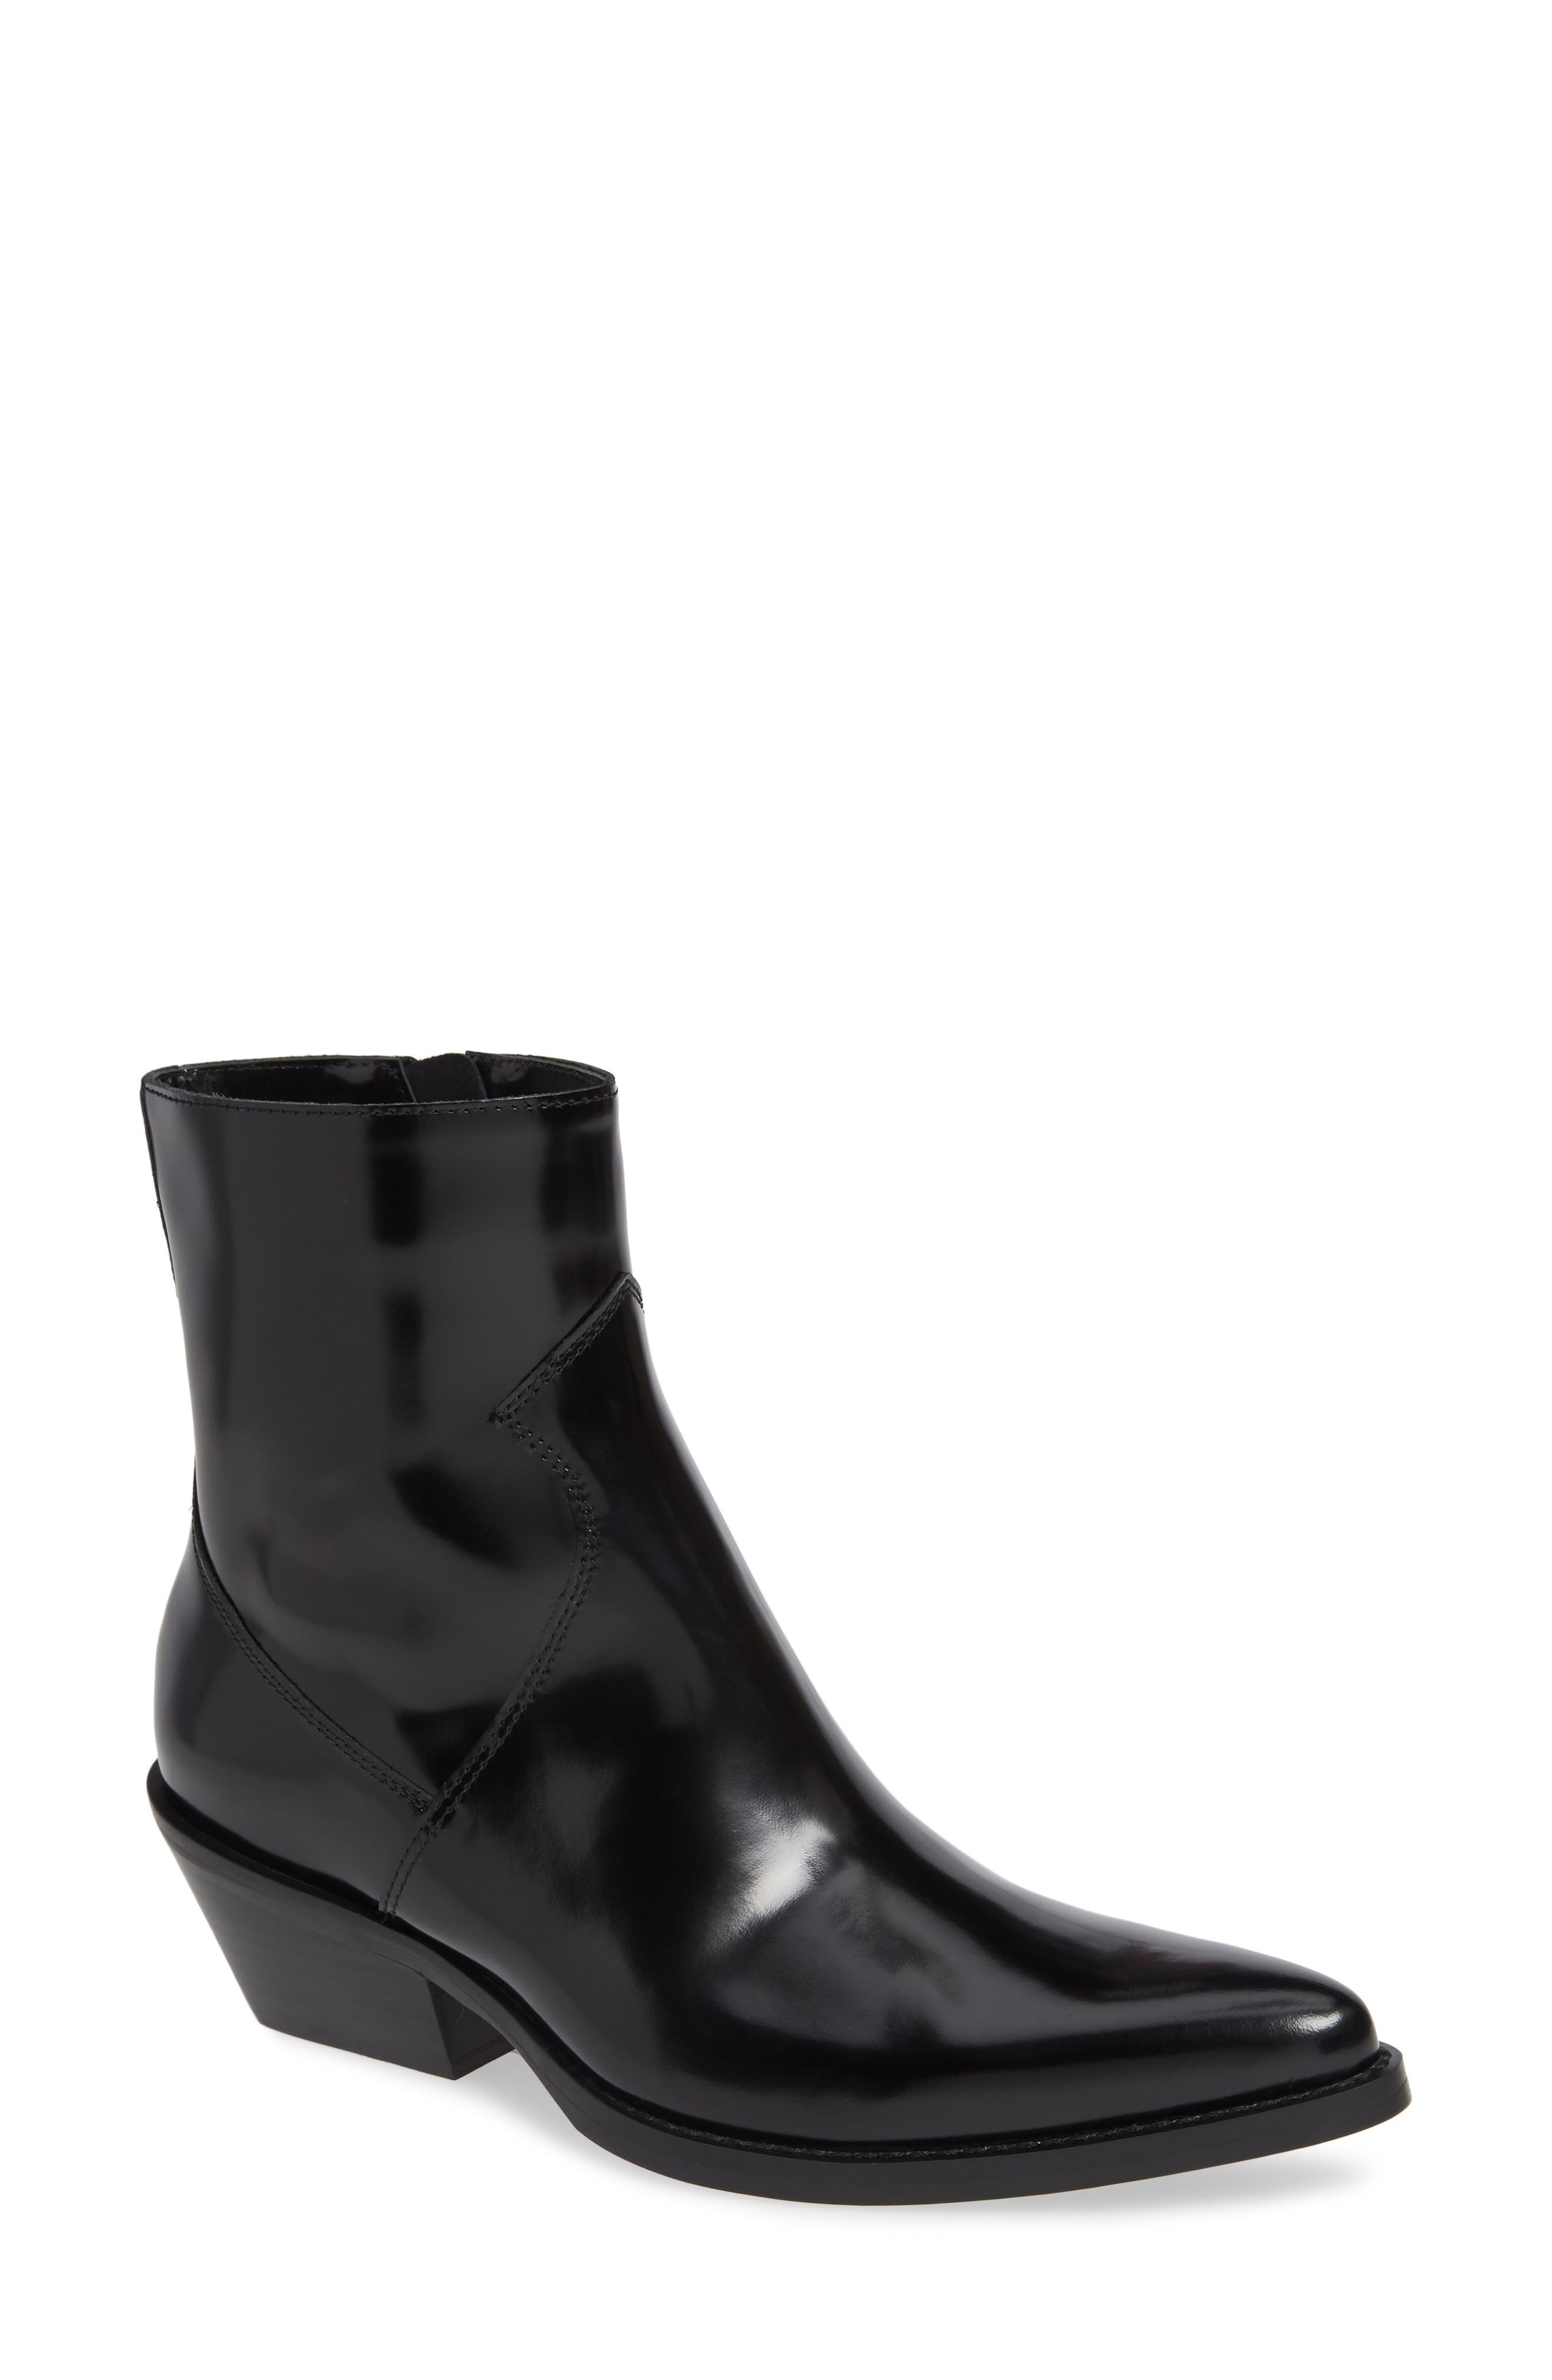 Calvin Klein Adrianna Bootie,                             Main thumbnail 1, color,                             BLACK LEATHER